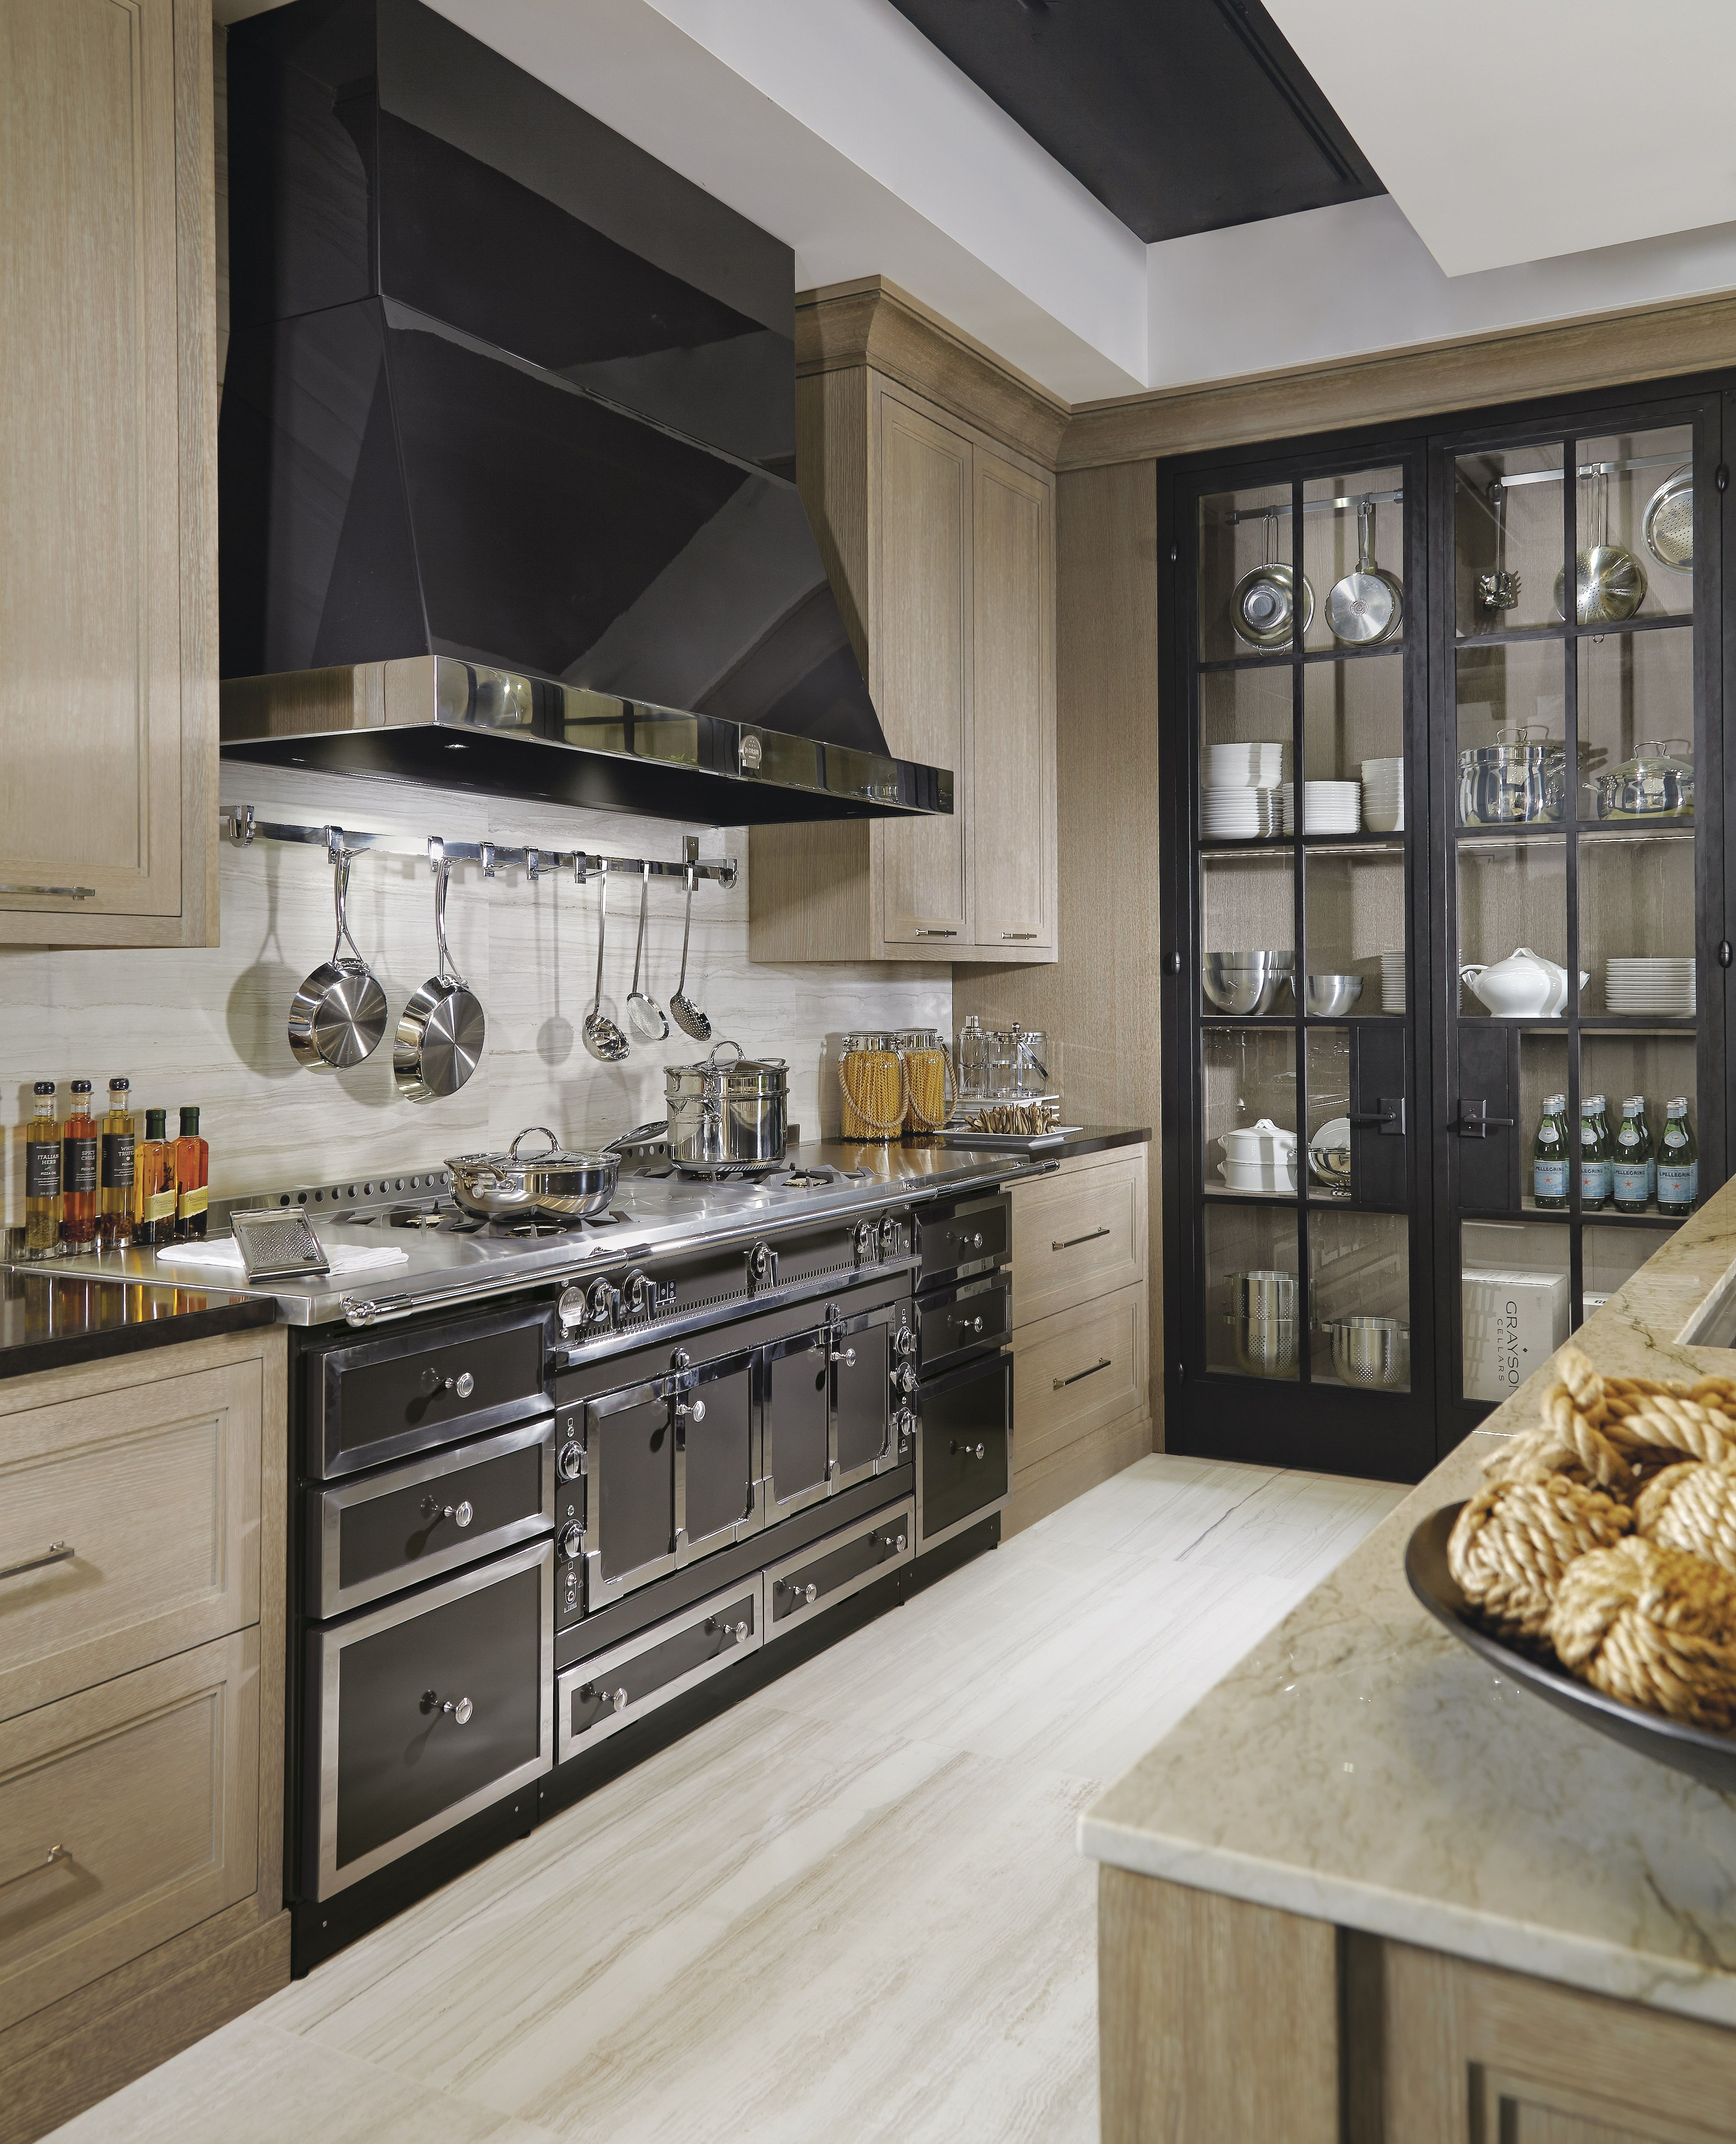 La Cornue Herd La Cornue Lovely Kitchens And Bathrooms Pinterest